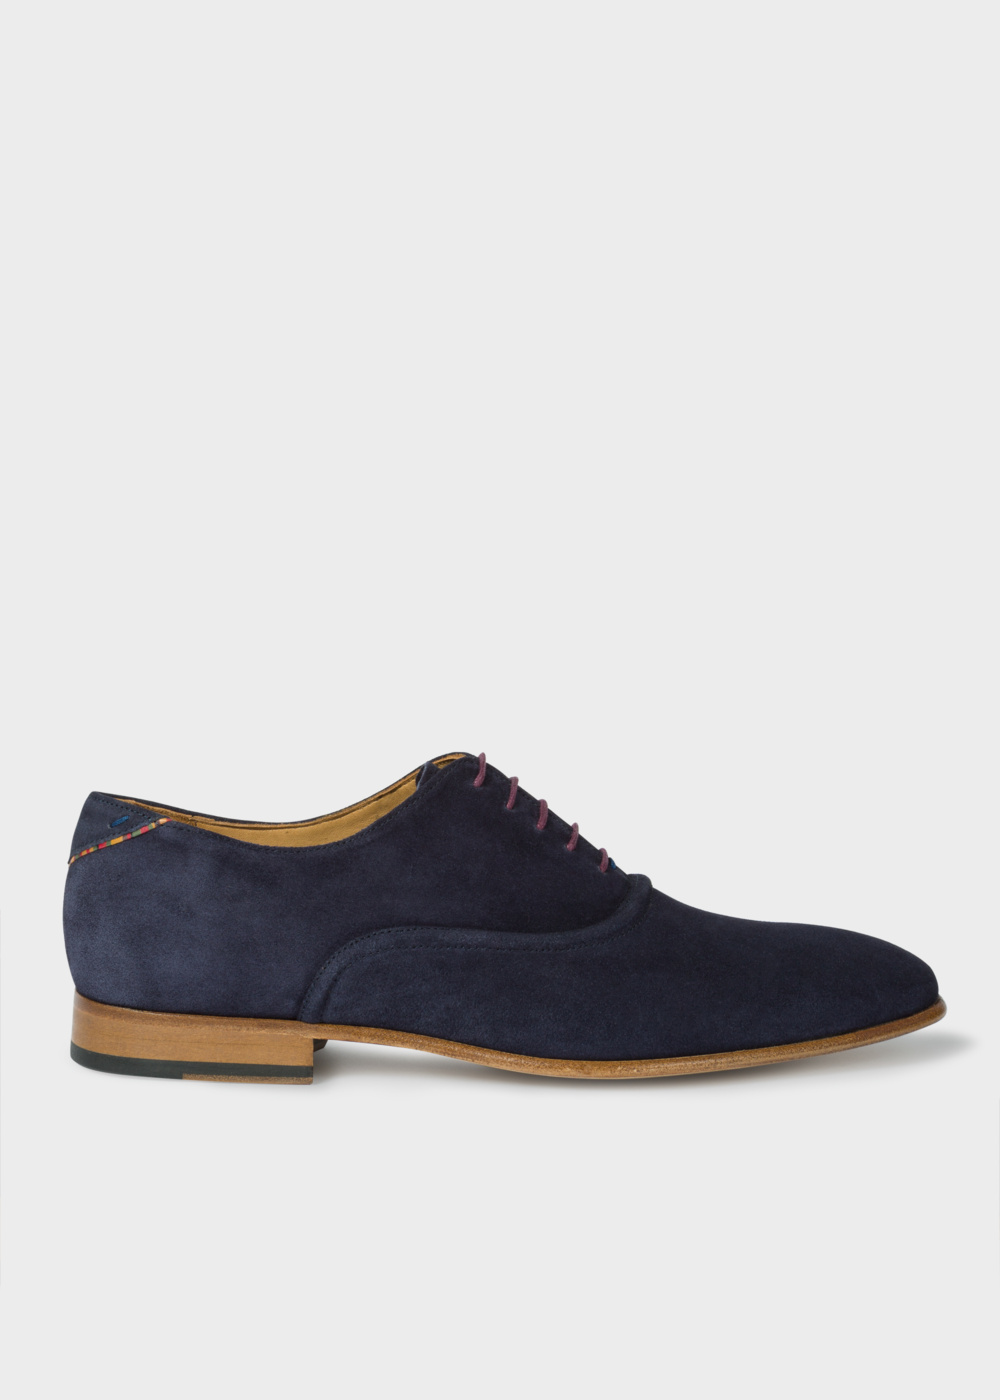 Paul Smith Men's Navy Suede 'Starling' Shoes